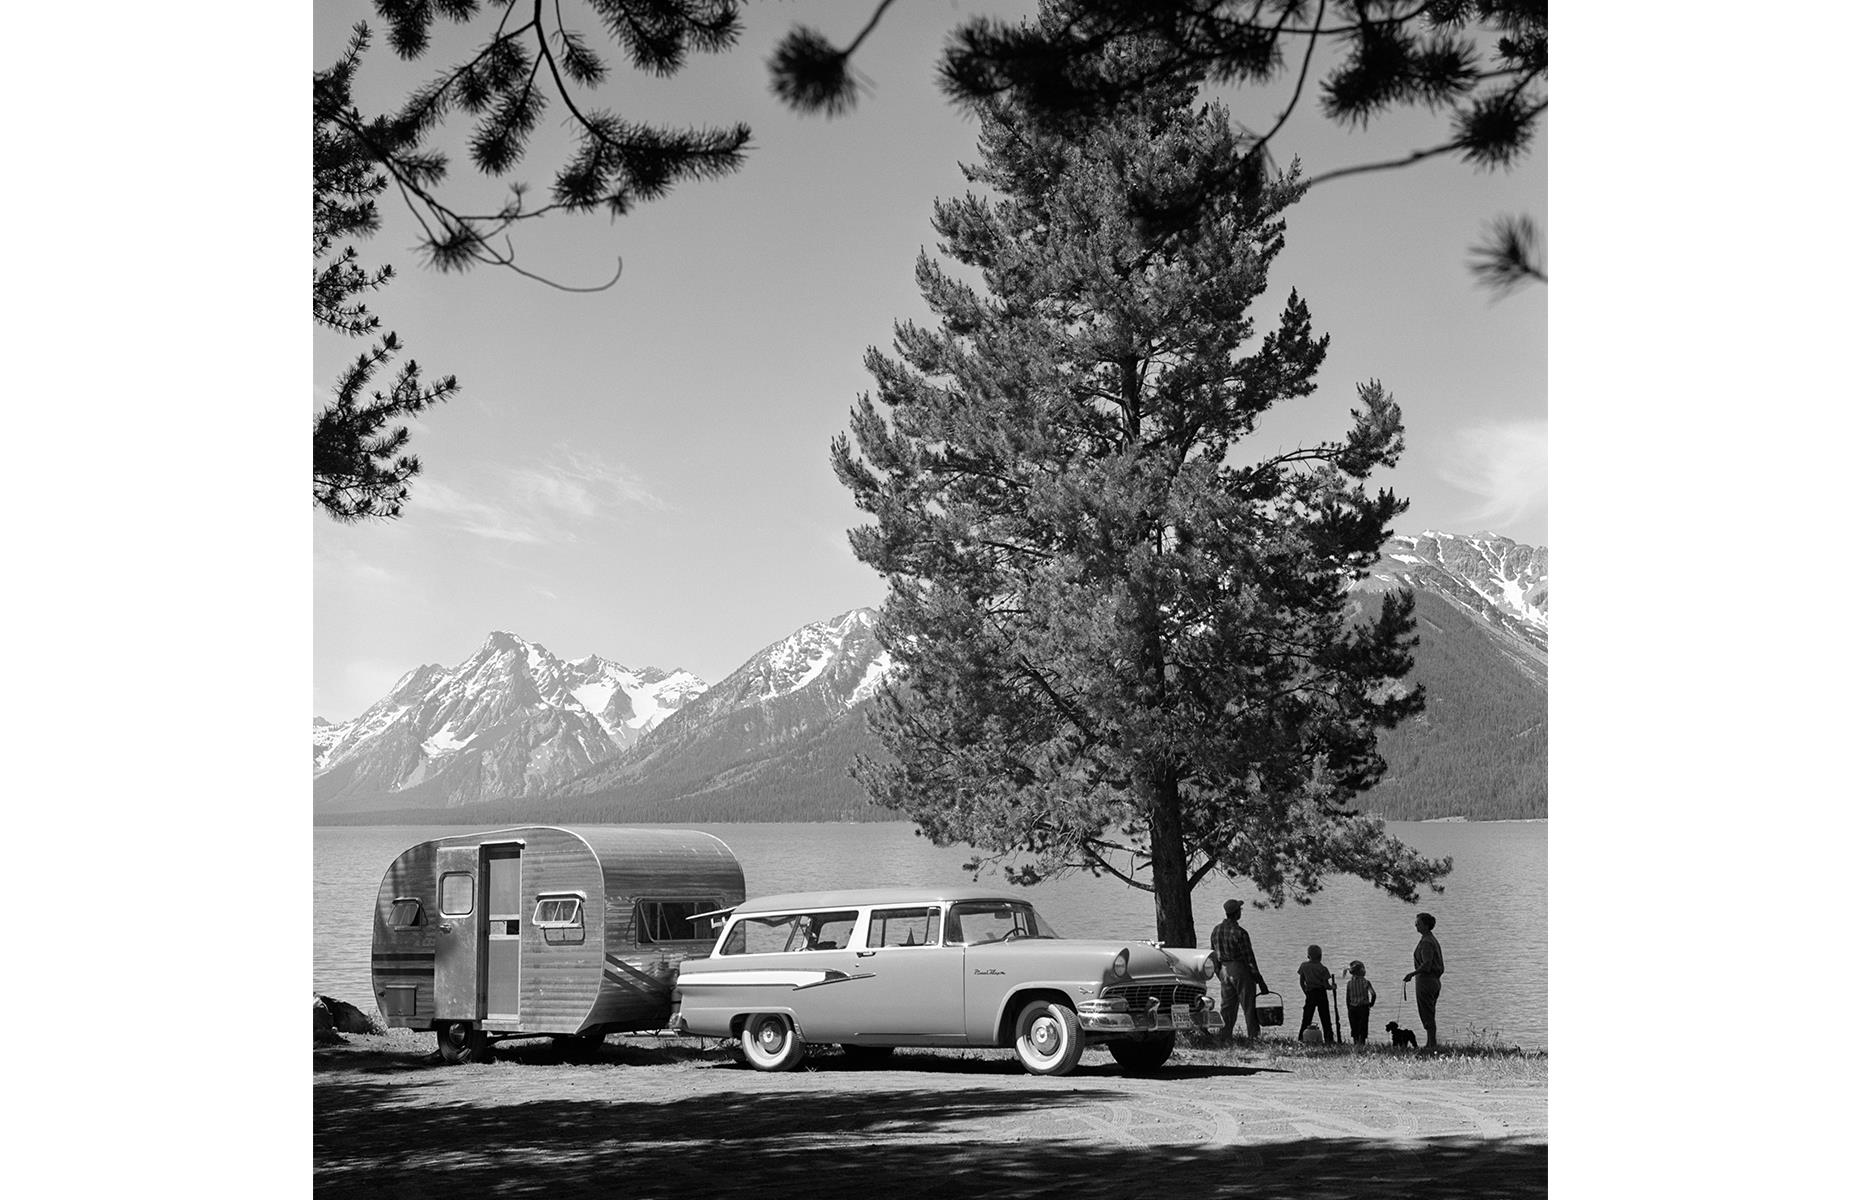 Slide 9 of 38: While some families made a beeline for the coast, others decided to enjoy America's backyard with their cars, trailers and motorhomes. Here the Tetons rise above Jackson Lake in the Grand Teton National Park, established in 1929. A young family look out at the view, picnic in hand, trailer parked up at the water's edge.